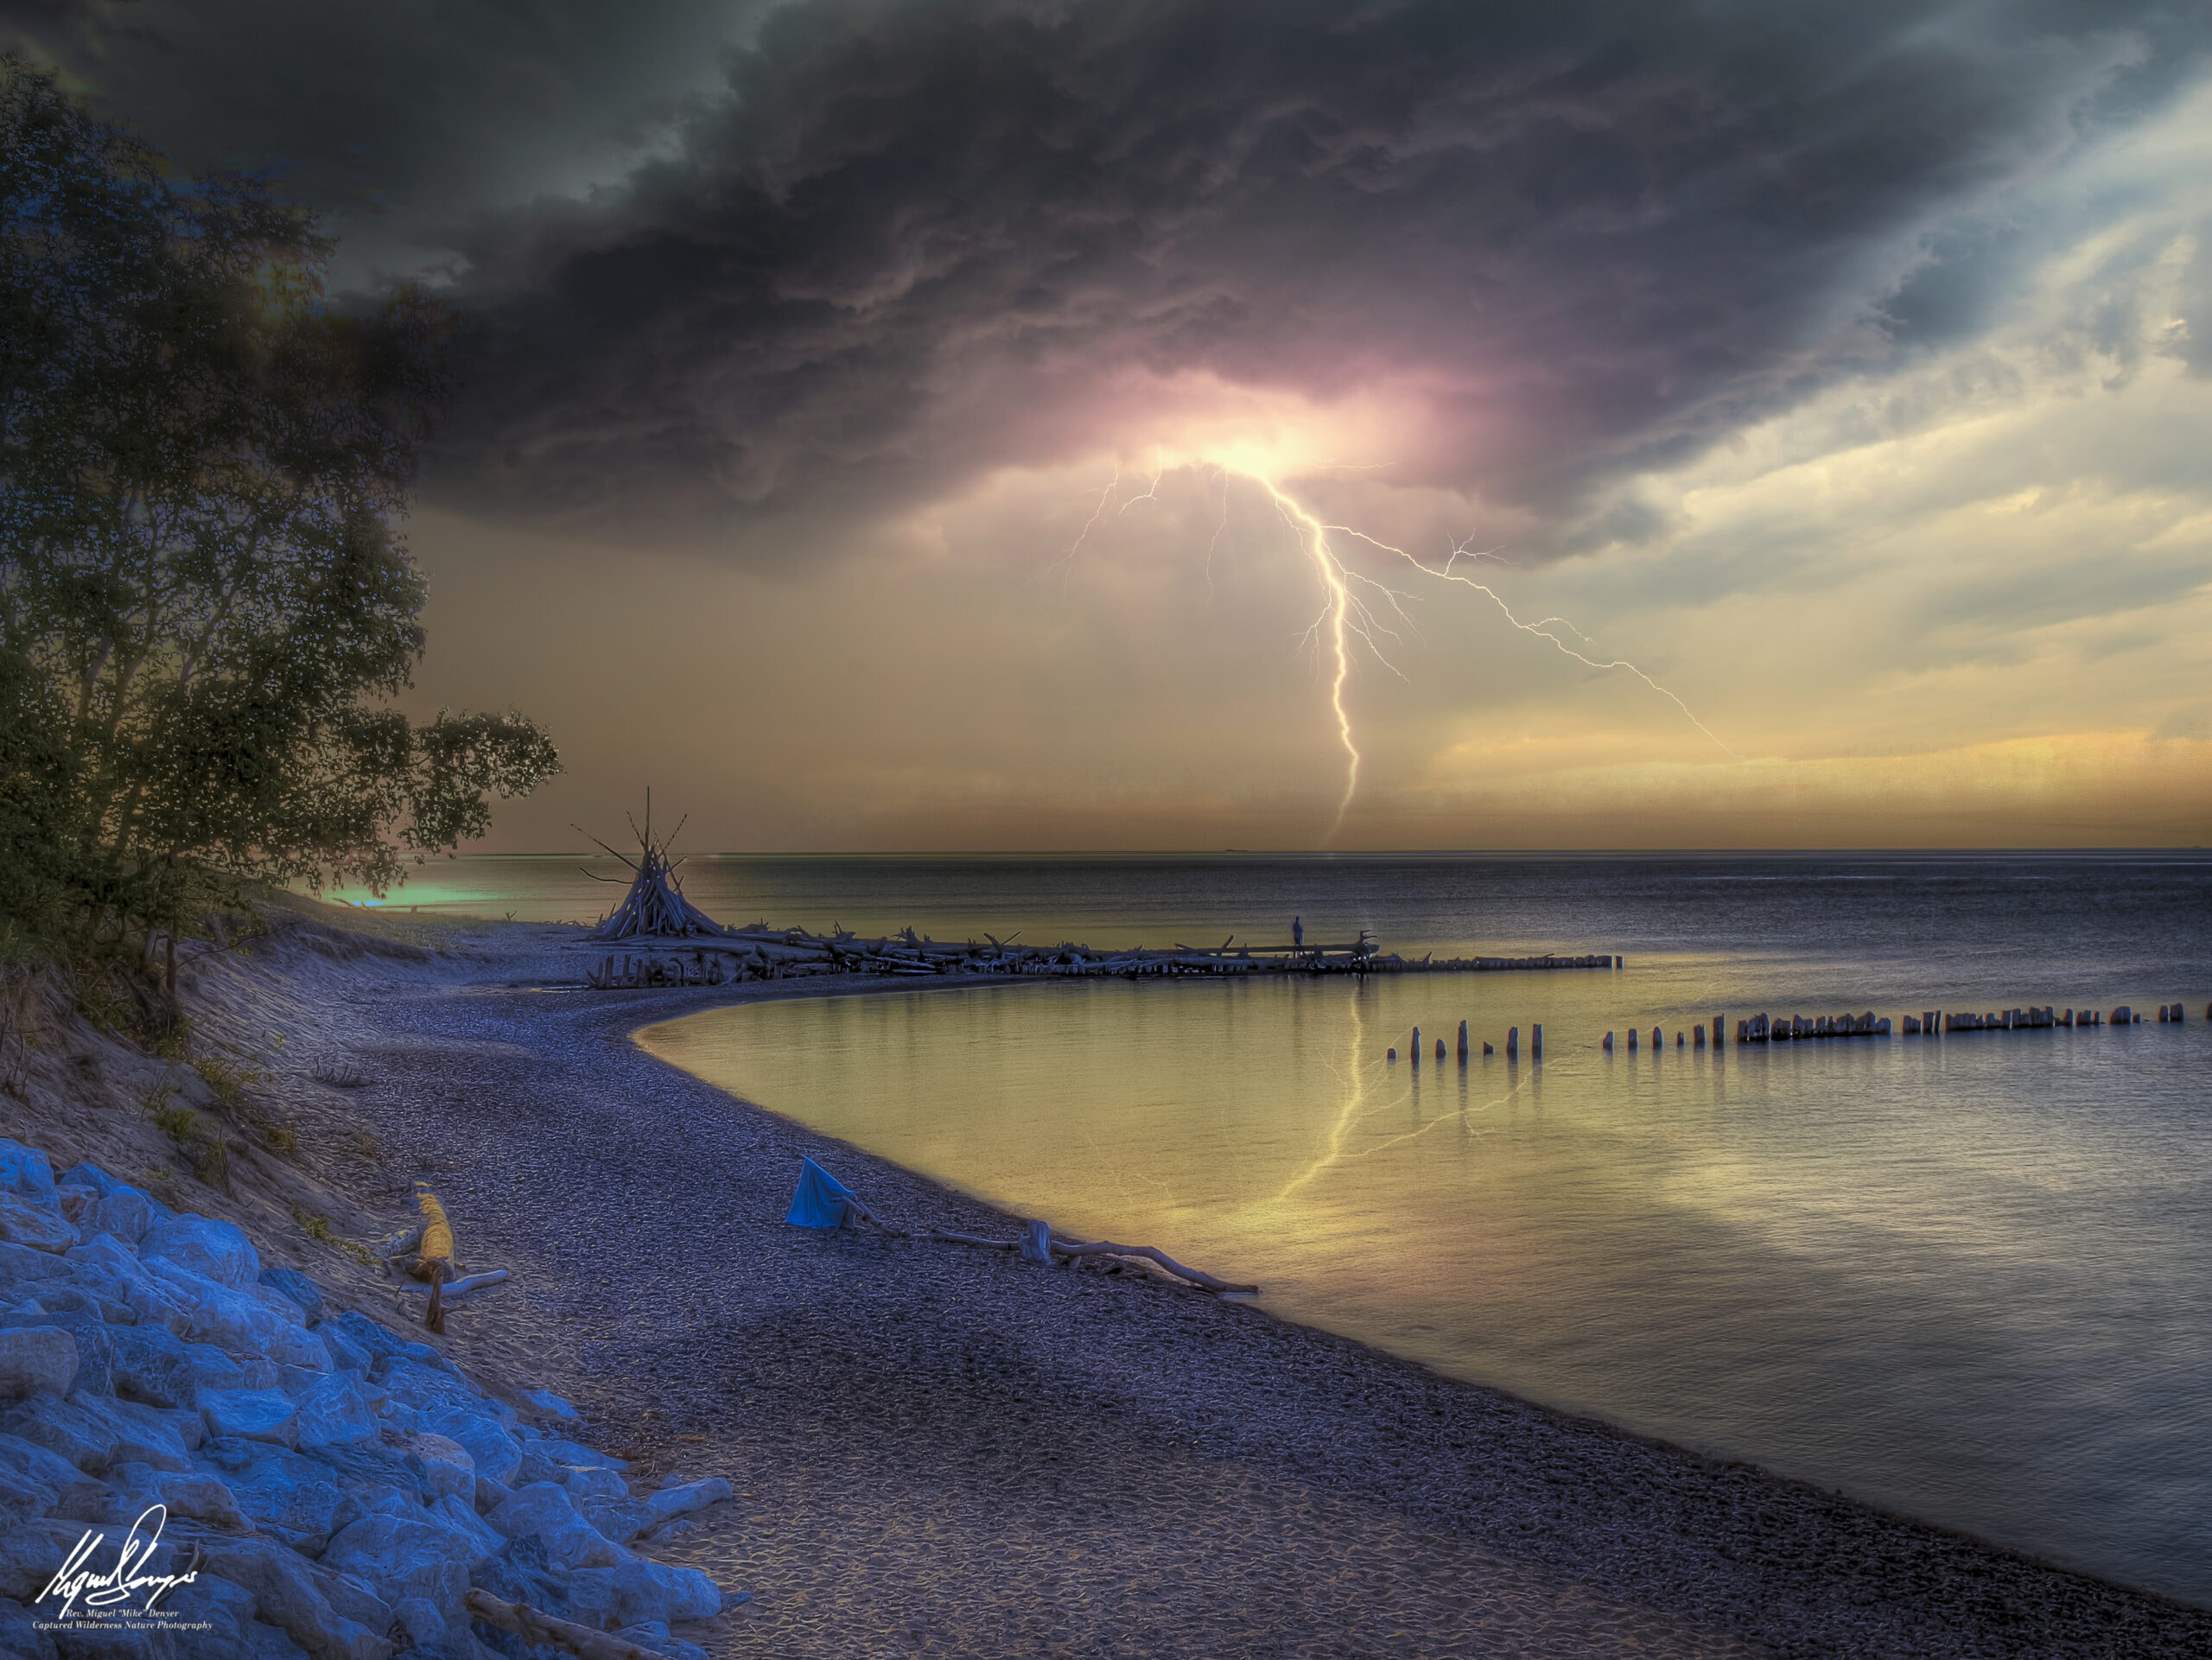 Thunderstorm over Whitefish Point Beach